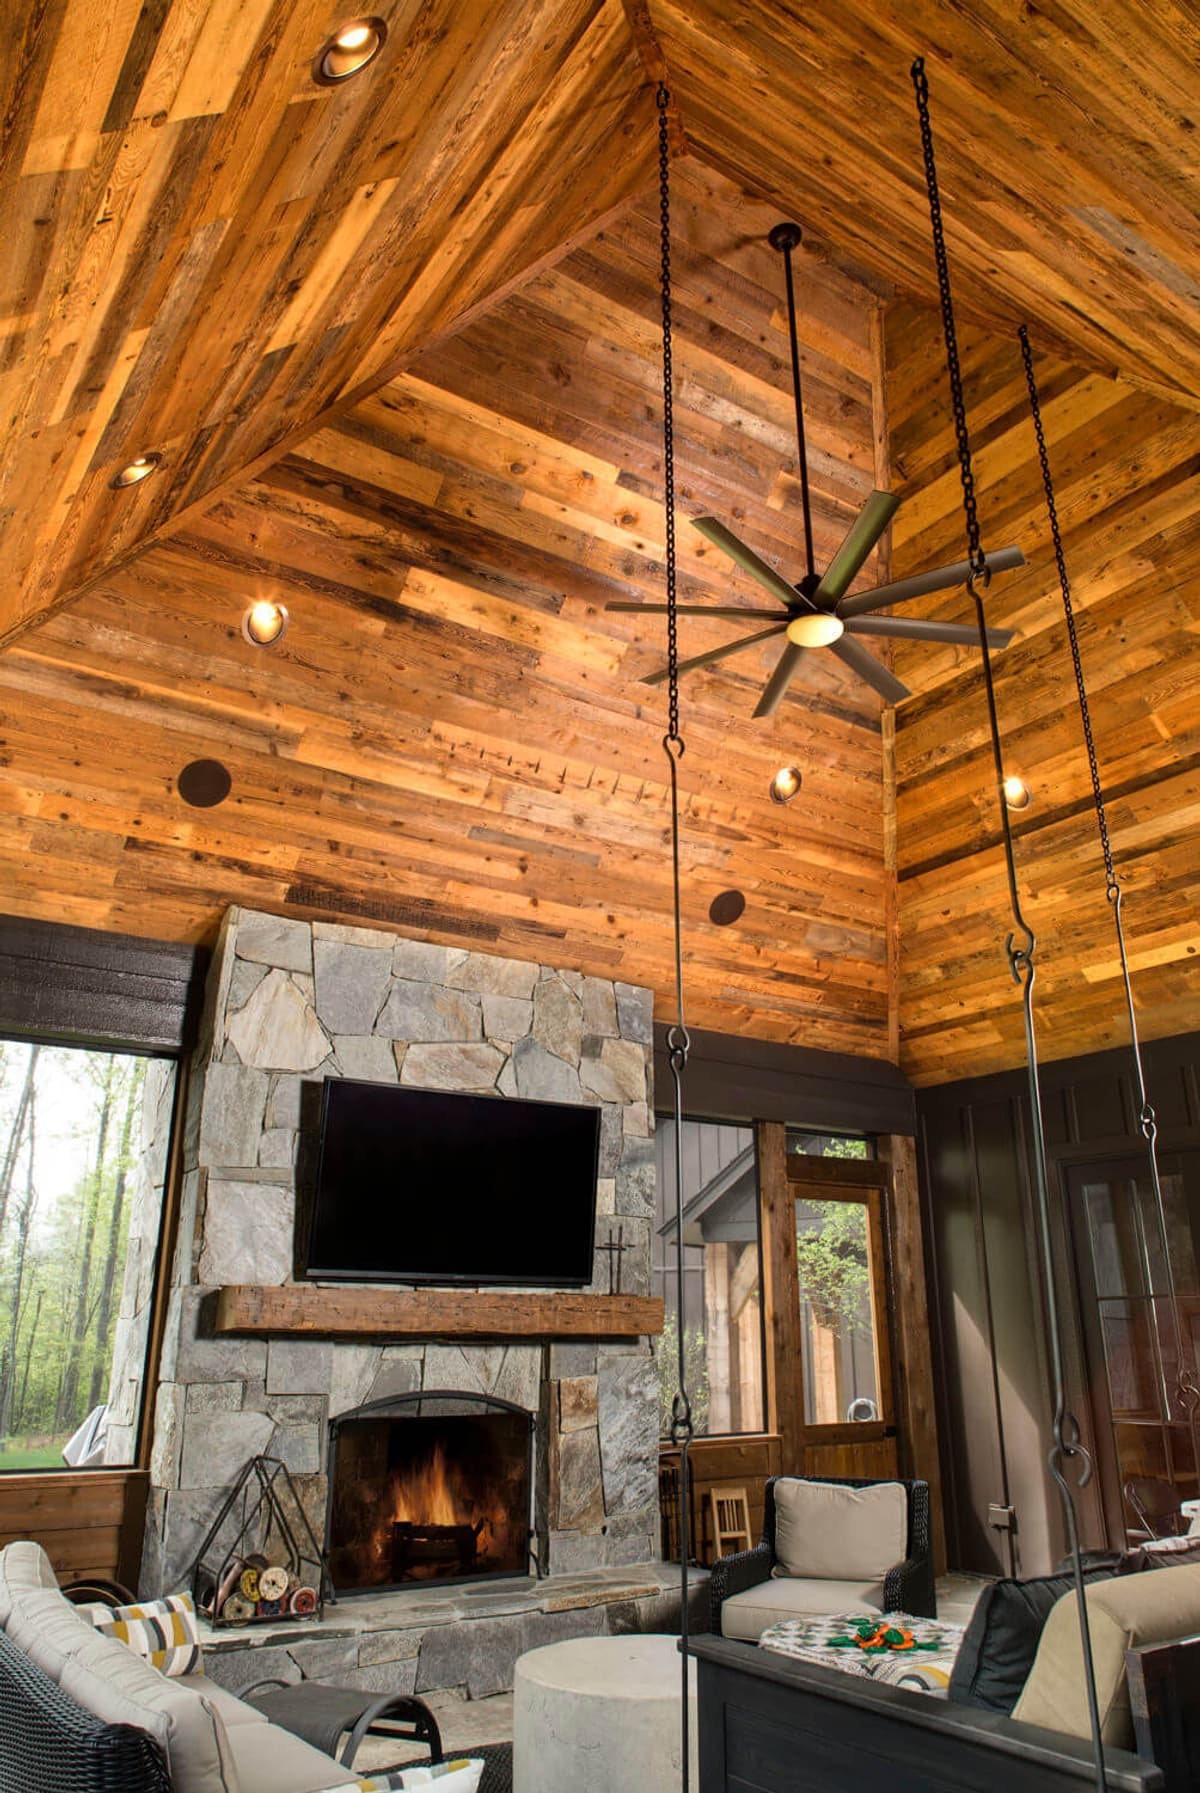 Reclaimed mixed Pine results in stunning vaulted reclaimed wood ceiling in living room.